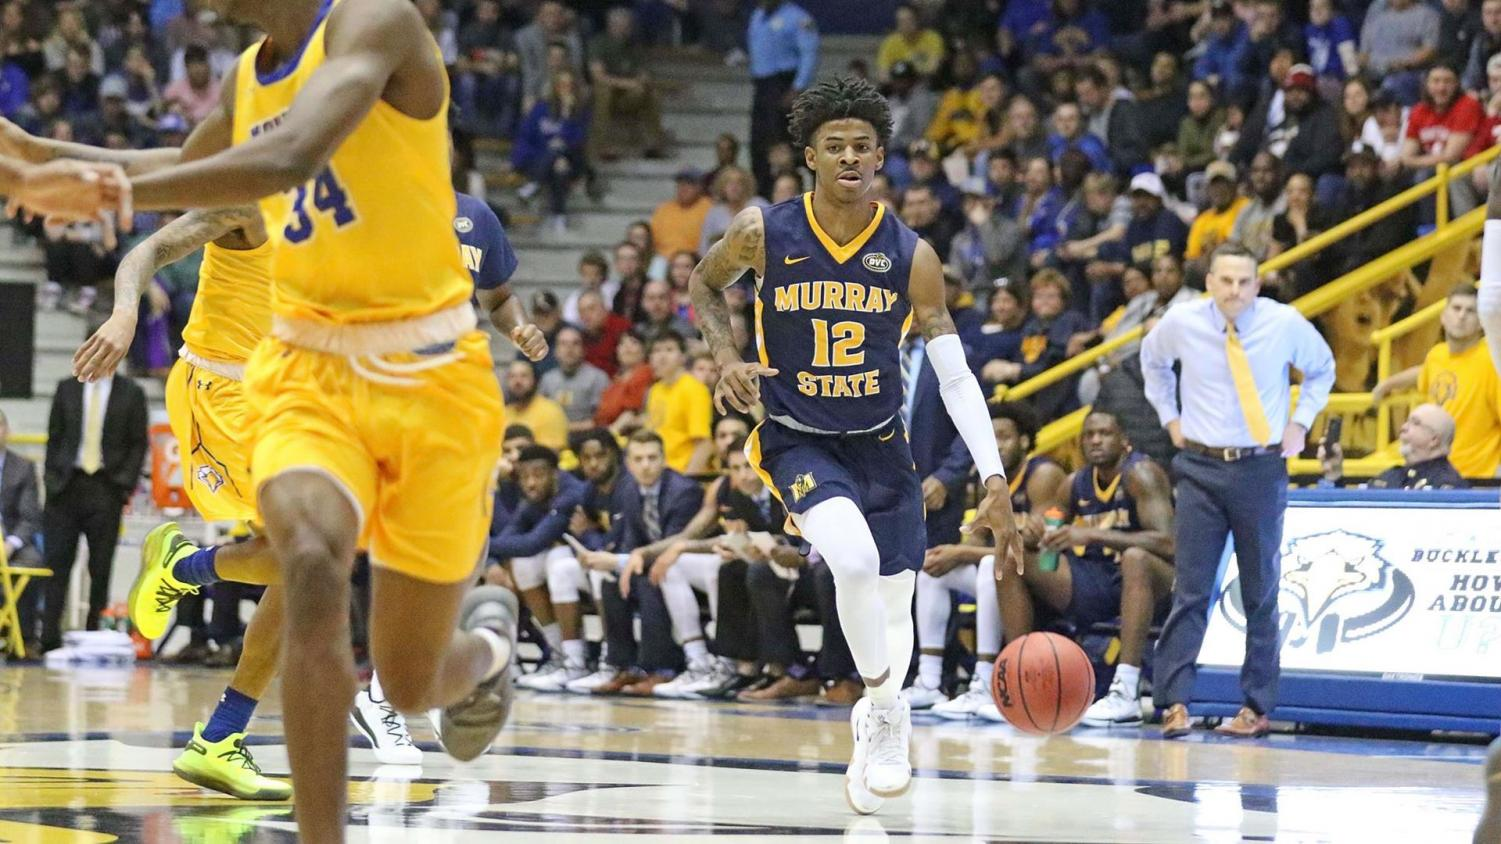 picture from Dave Winder- Murray State Athletics. goracers.com